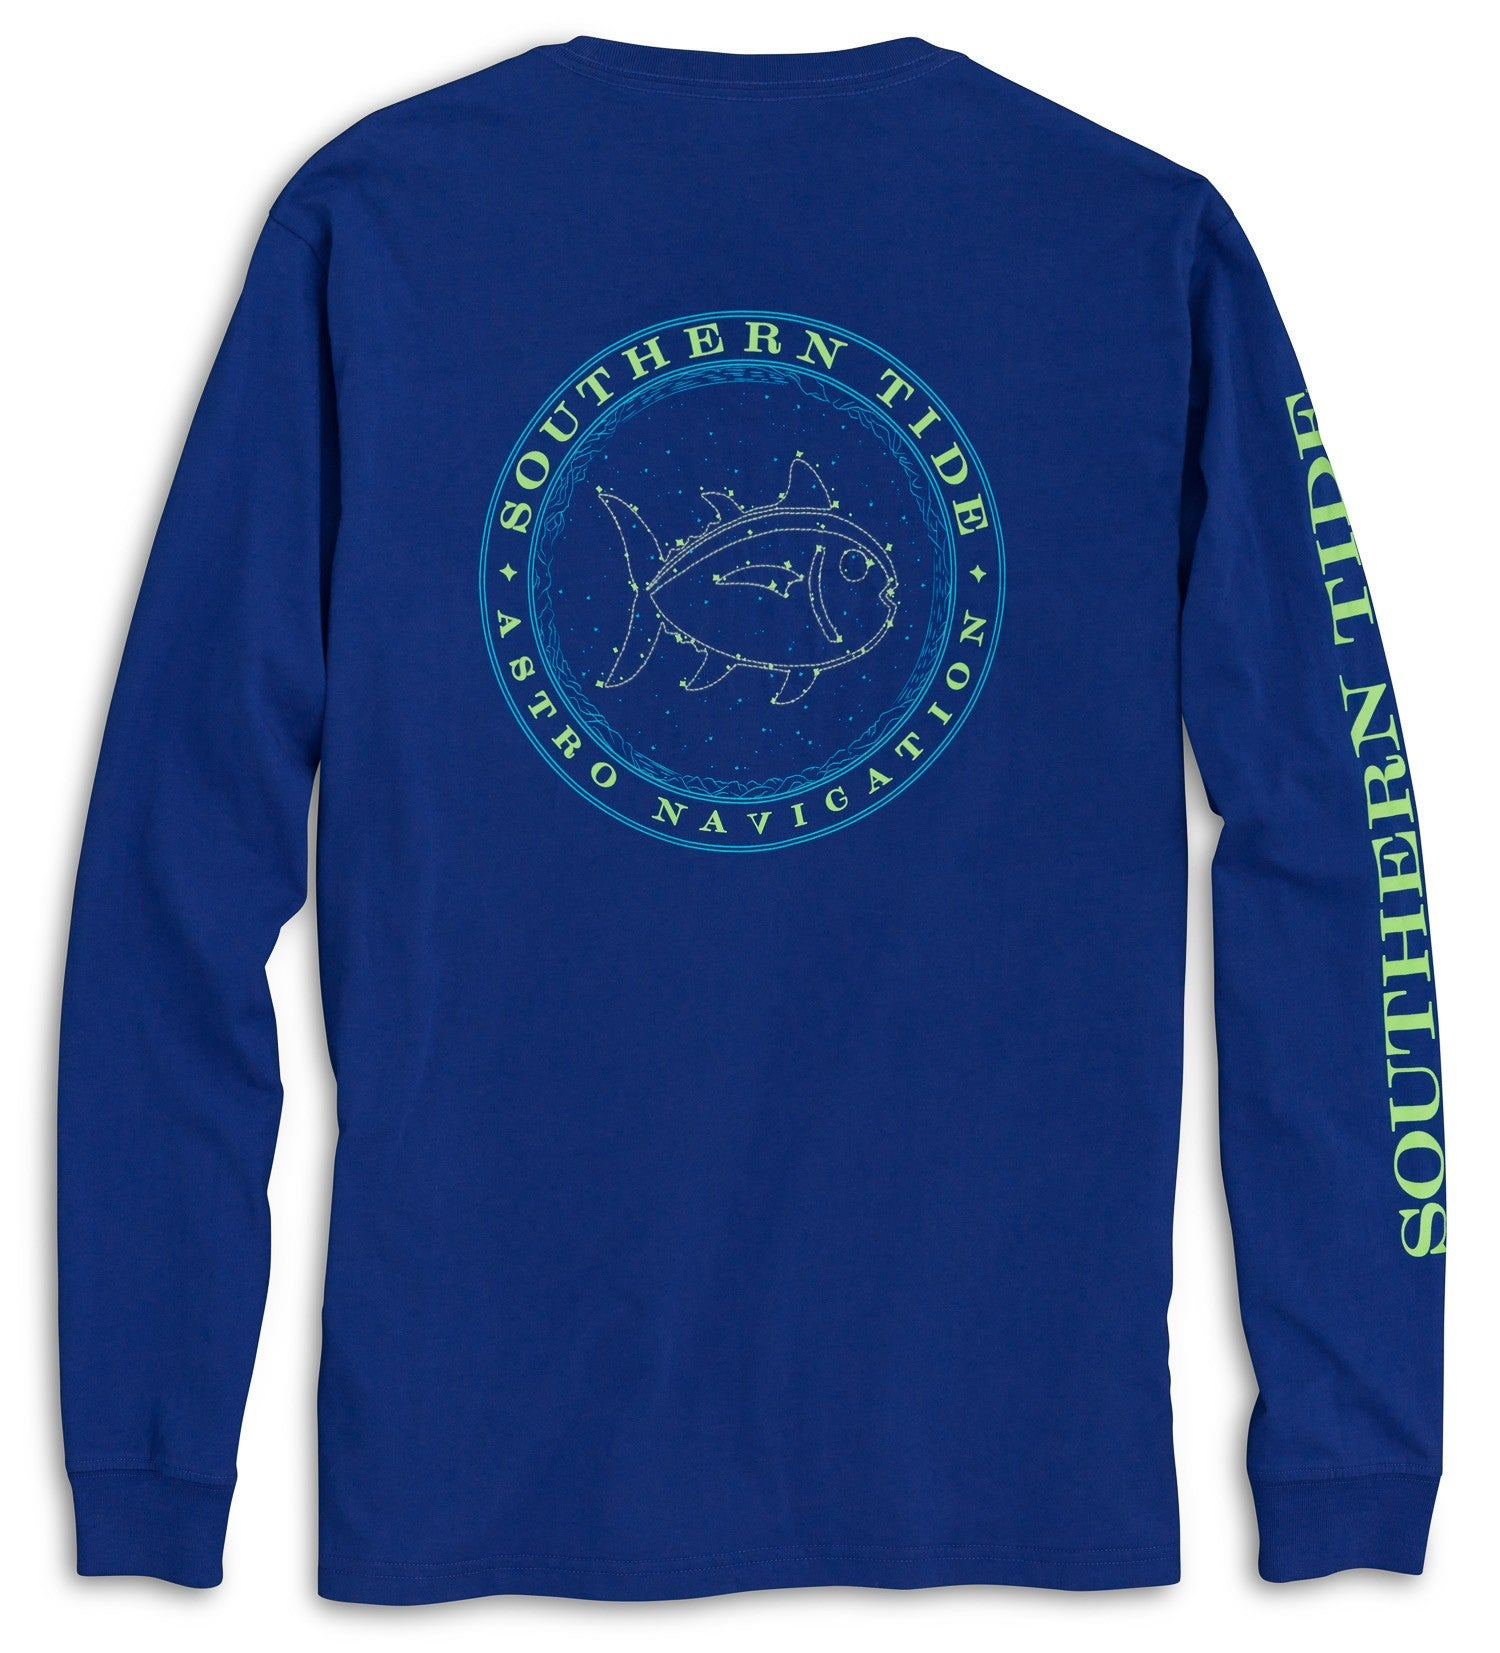 Southern Tide Astro Navigation Long Sleeve T-Shirt - Blue Cove Back View